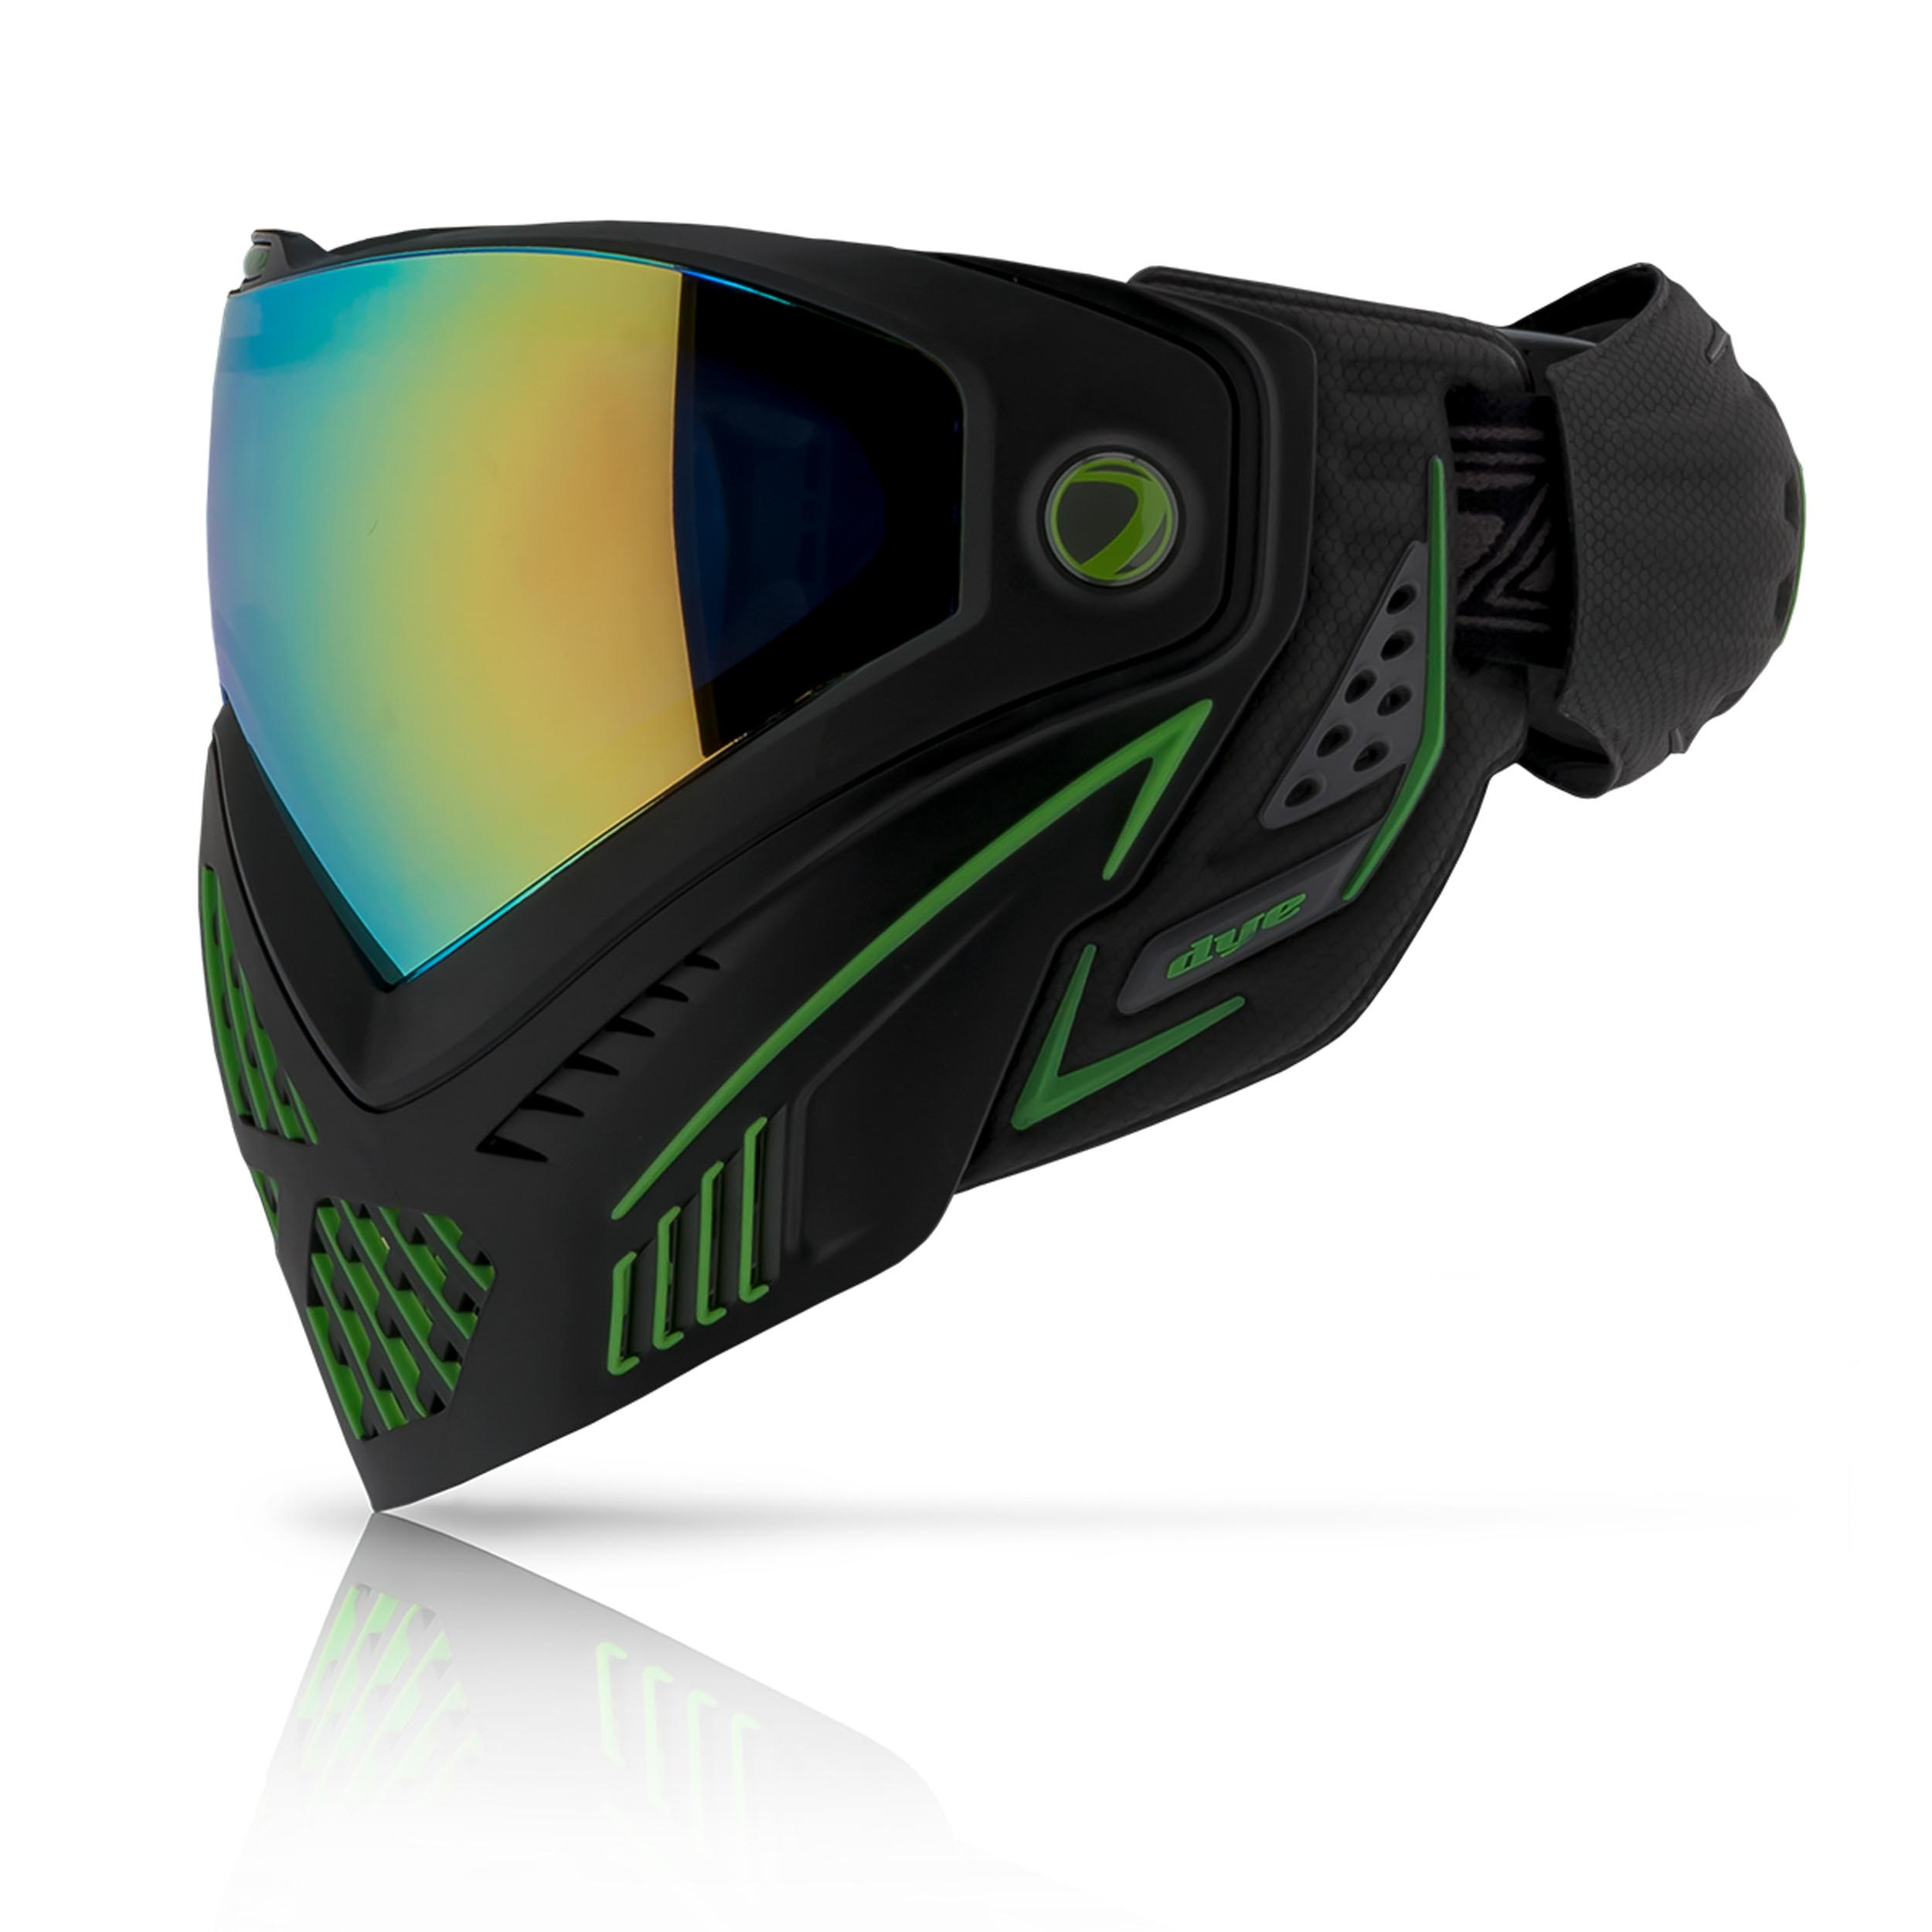 MAS472-1 Dye I5 thermal goggle Onyx Black Gold 2.0 - MAS473